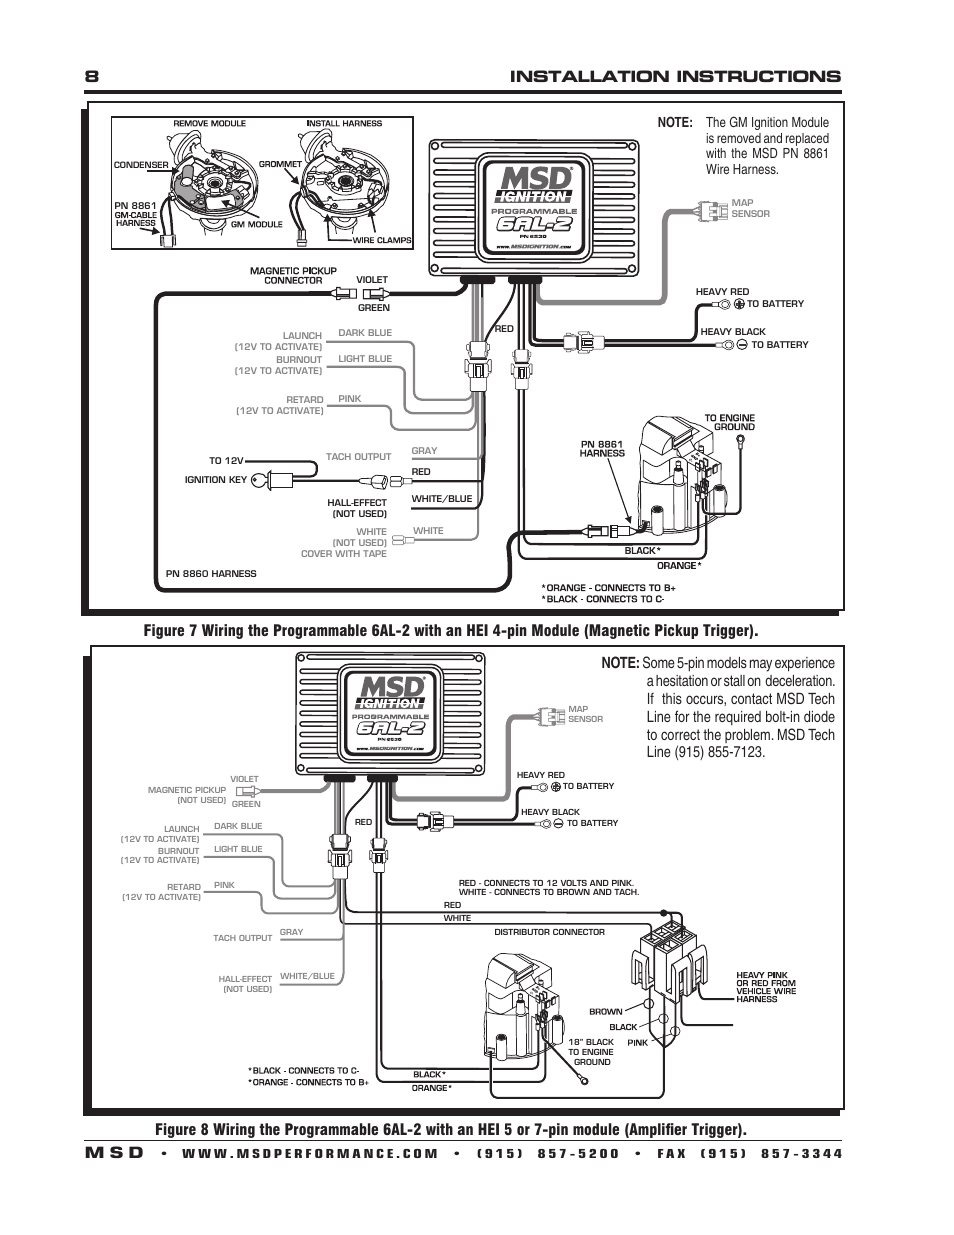 Msd Programmable 6al Digital Wiring Diagram 2 Ignition Page 8